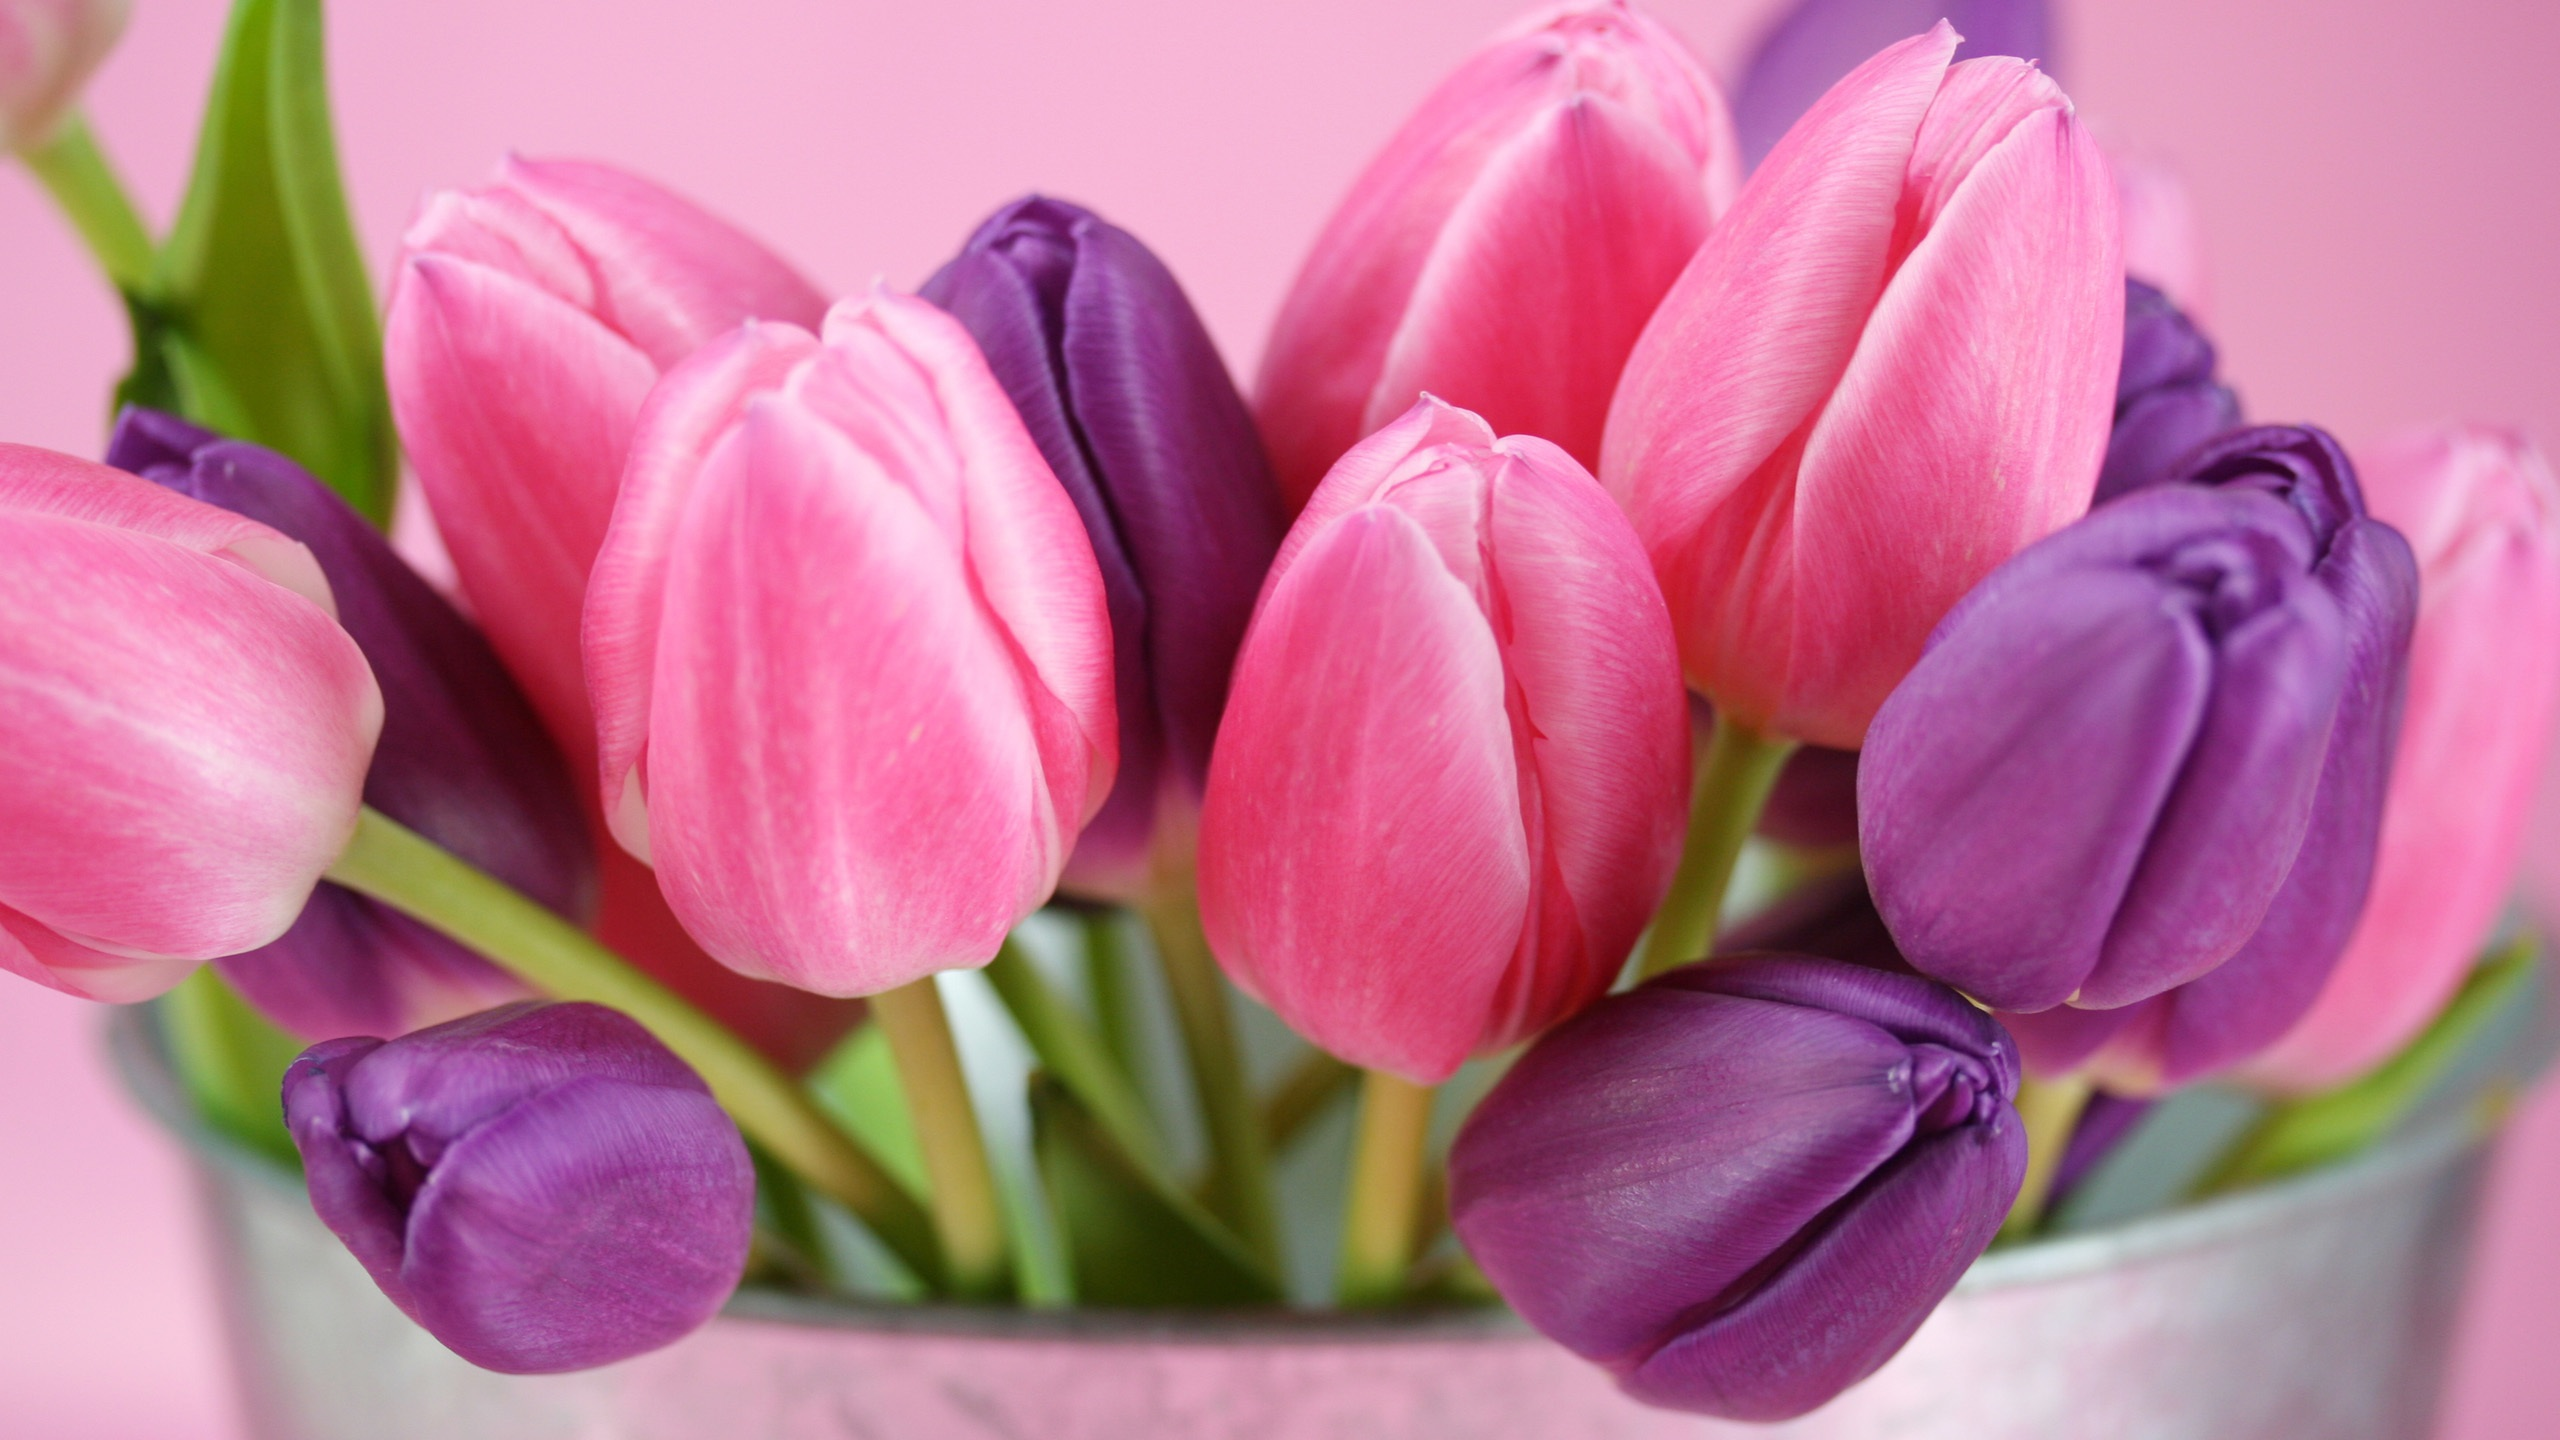 Pink And Purple Tulips Flowers 750x1334 Iphone 8 7 6 6s Wallpaper